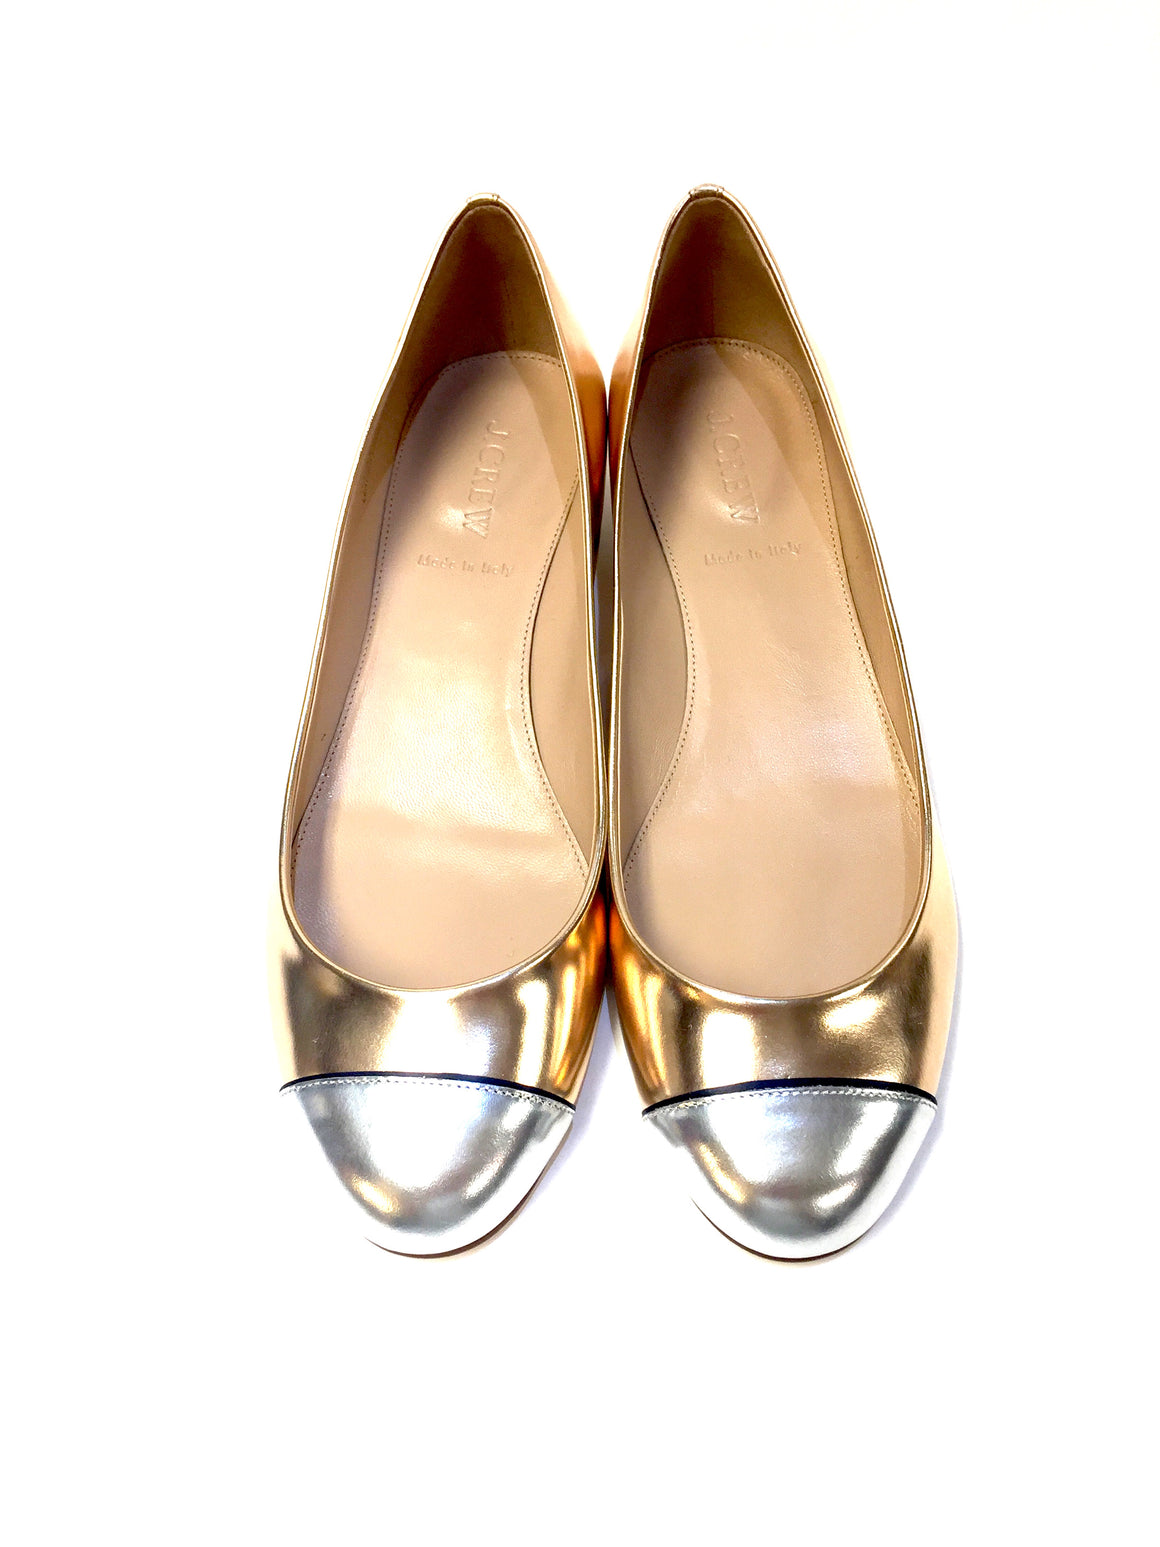 J. CREW    New  Gold Leather Silver Cap Toe Ballet Flats  Size: EU 39 / US9